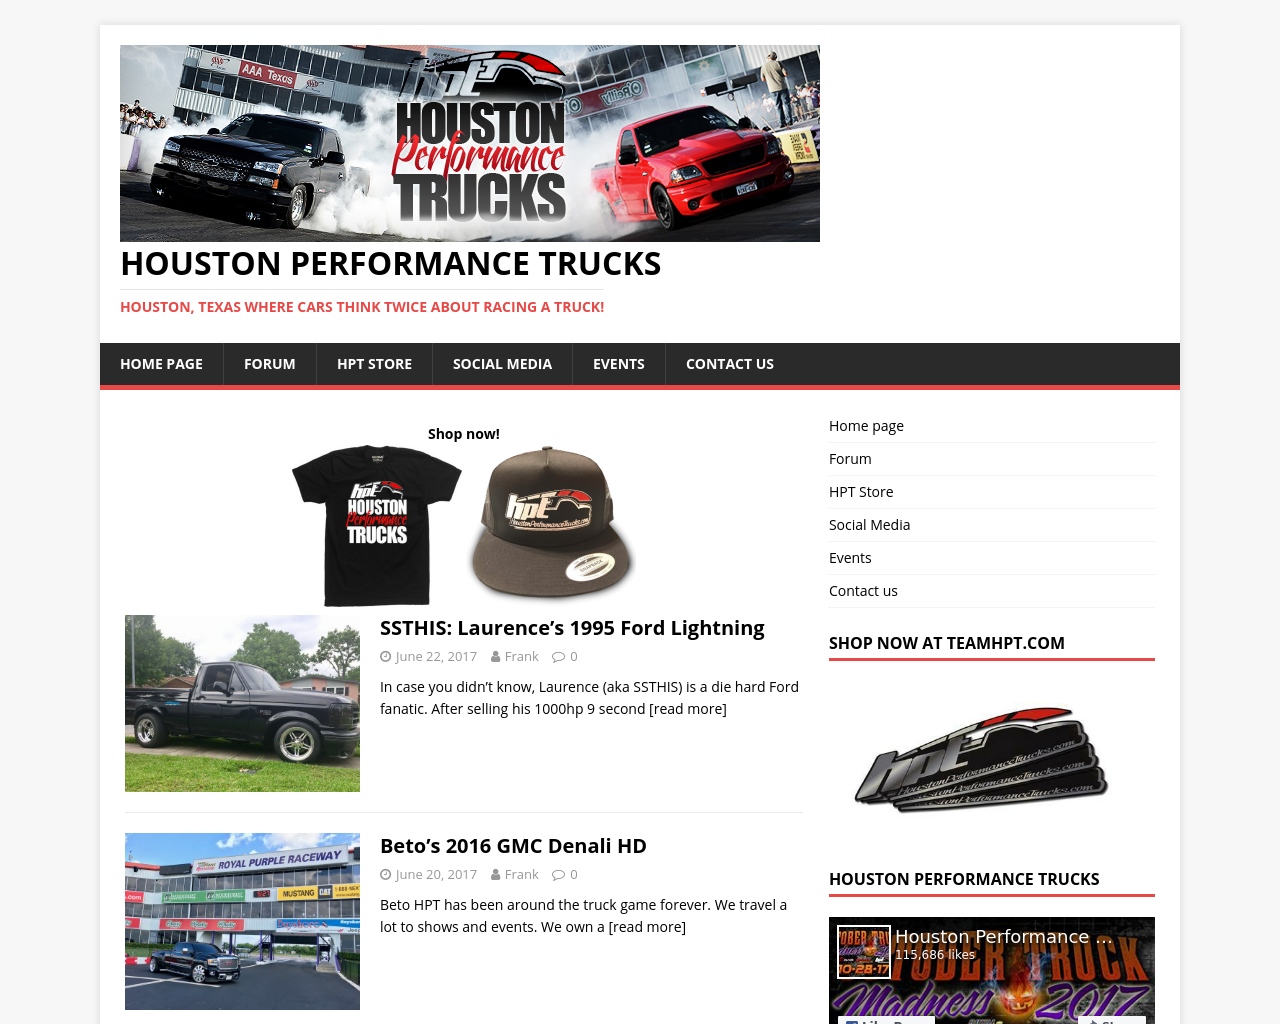 Houston-Performance-Trucks-Advertising-Reviews-Pricing